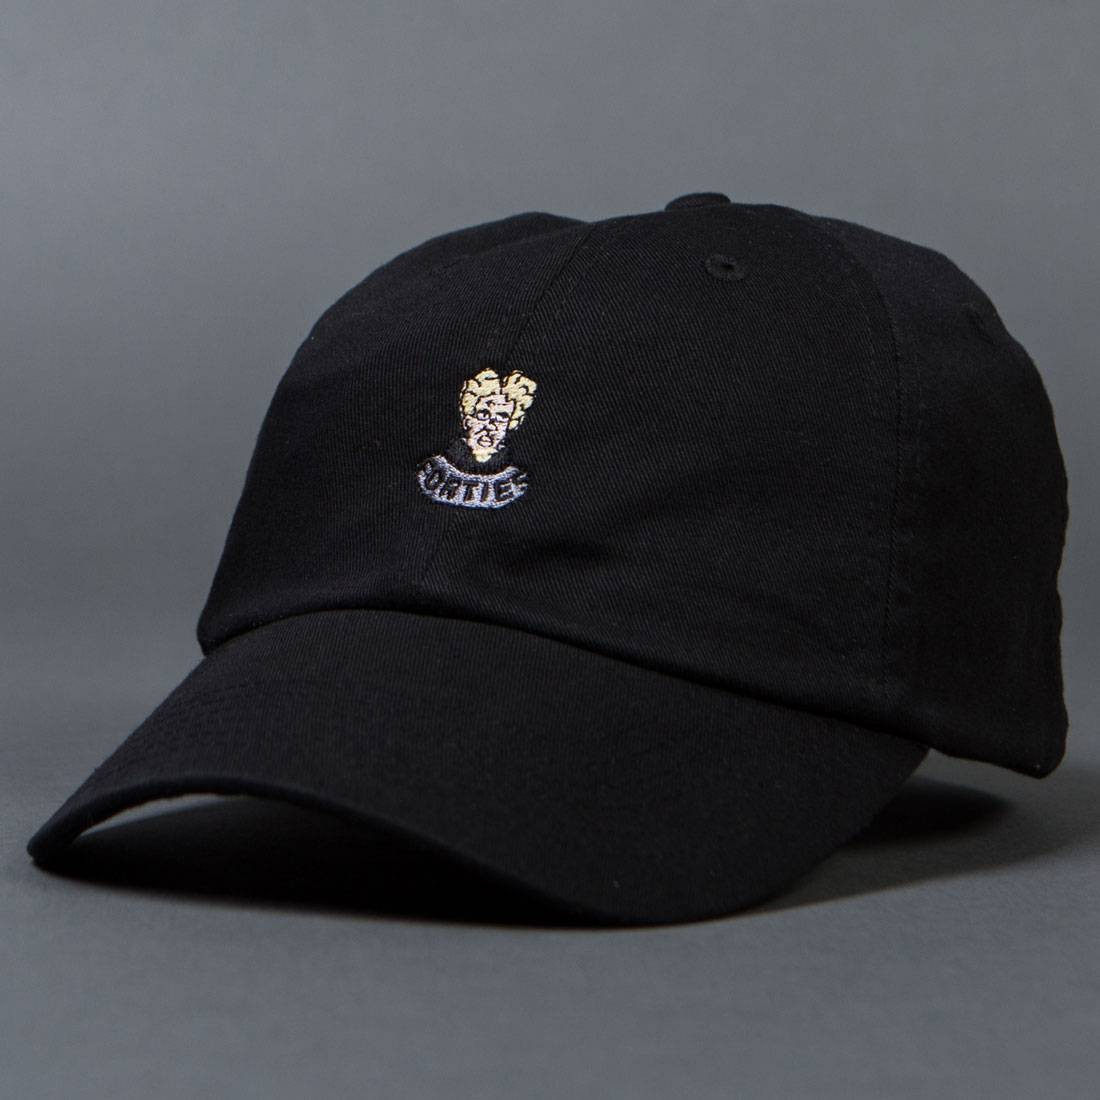 8834b8a7b 40s and Shorties High Fashion Deconstructed Hat (black)